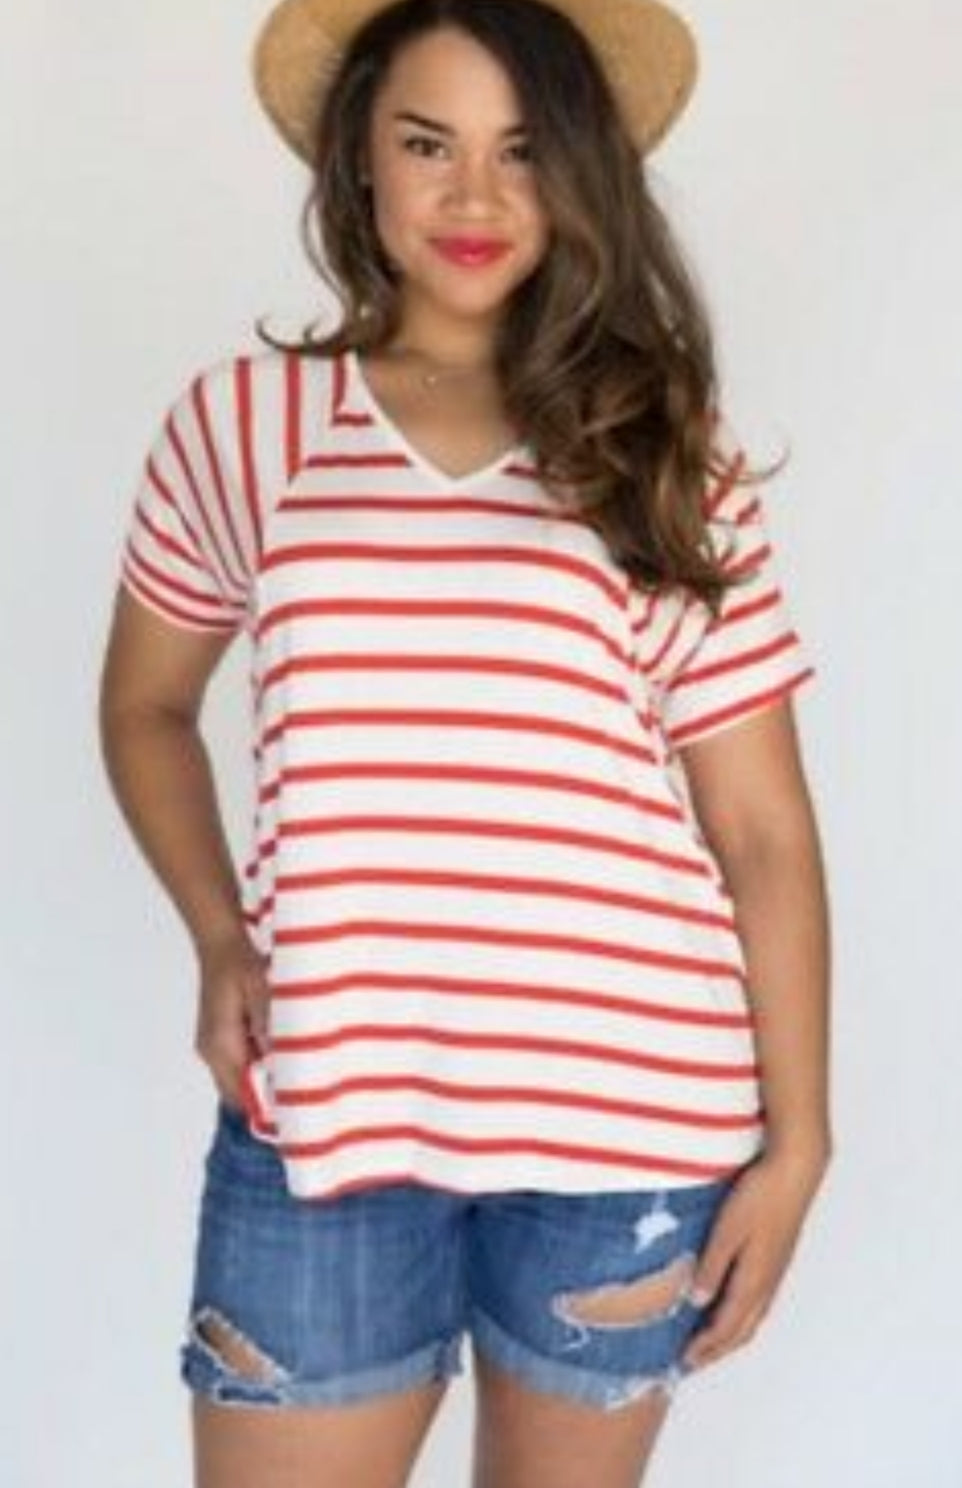 Love Top - Red/Orange on Ivory